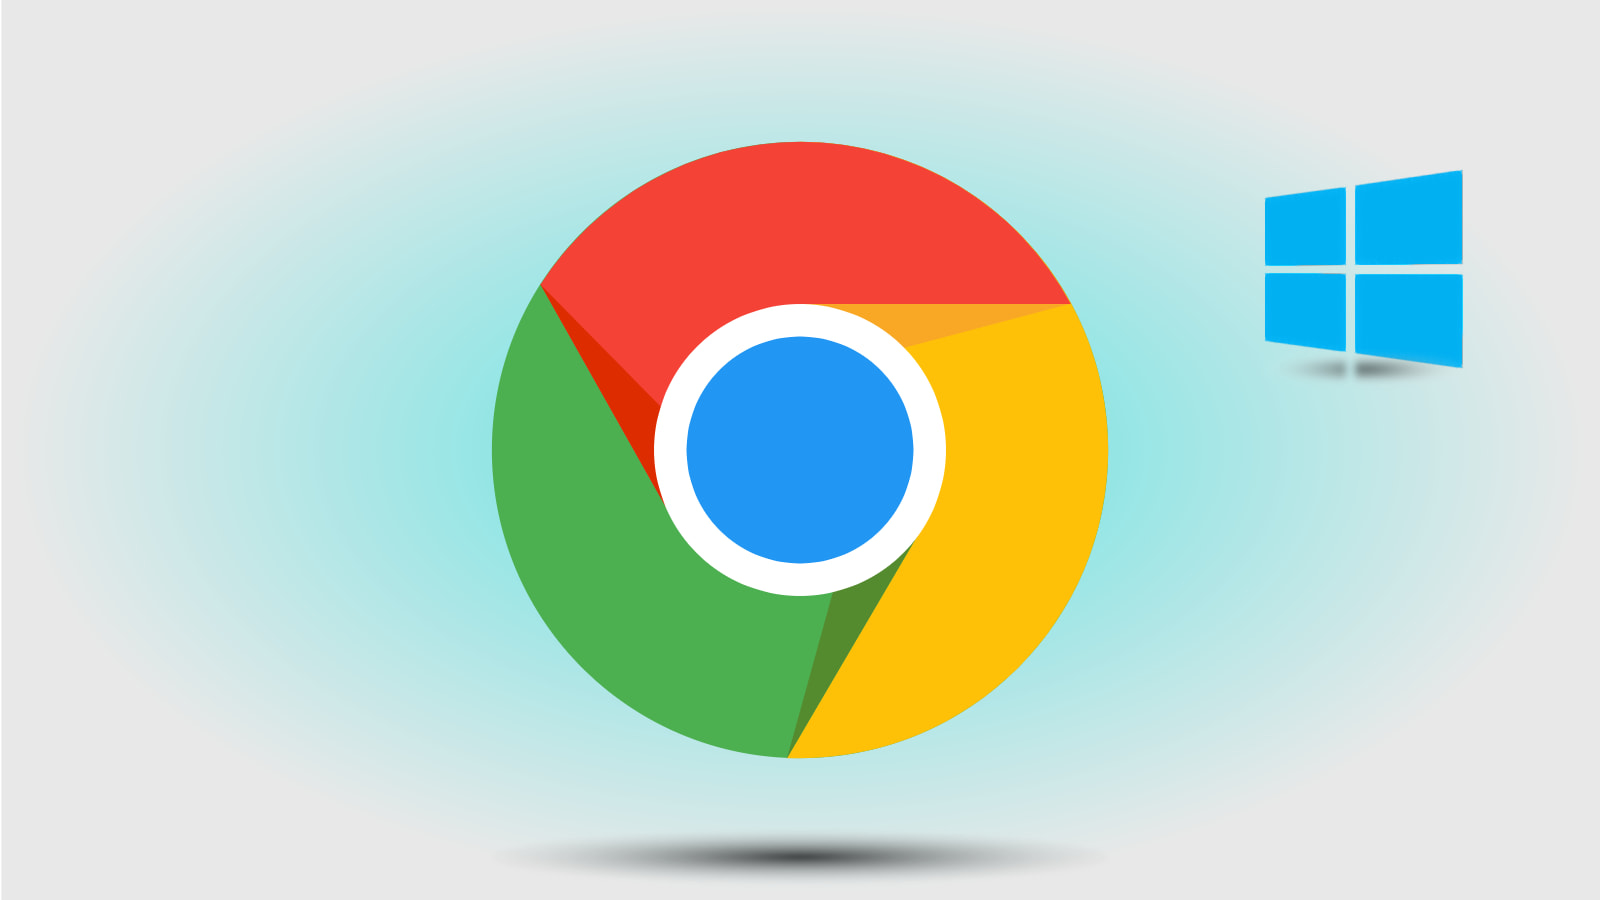 Hold the phone, Windows apps on Chrome OS are NOT the future